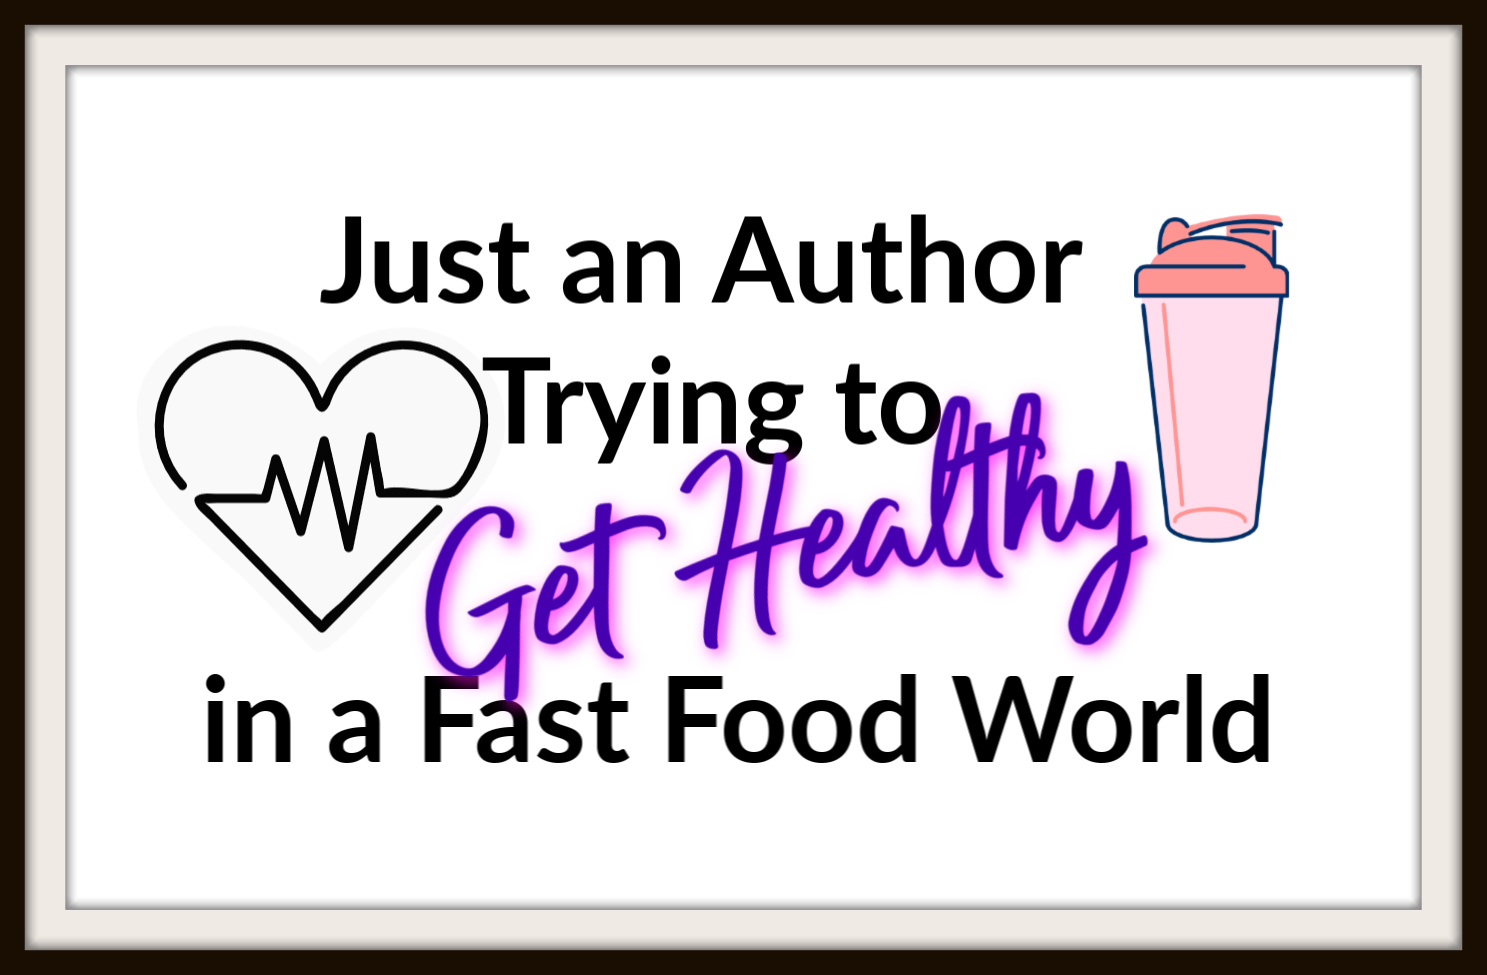 Just an Author Trying to Get Healthy in a Fast Food World